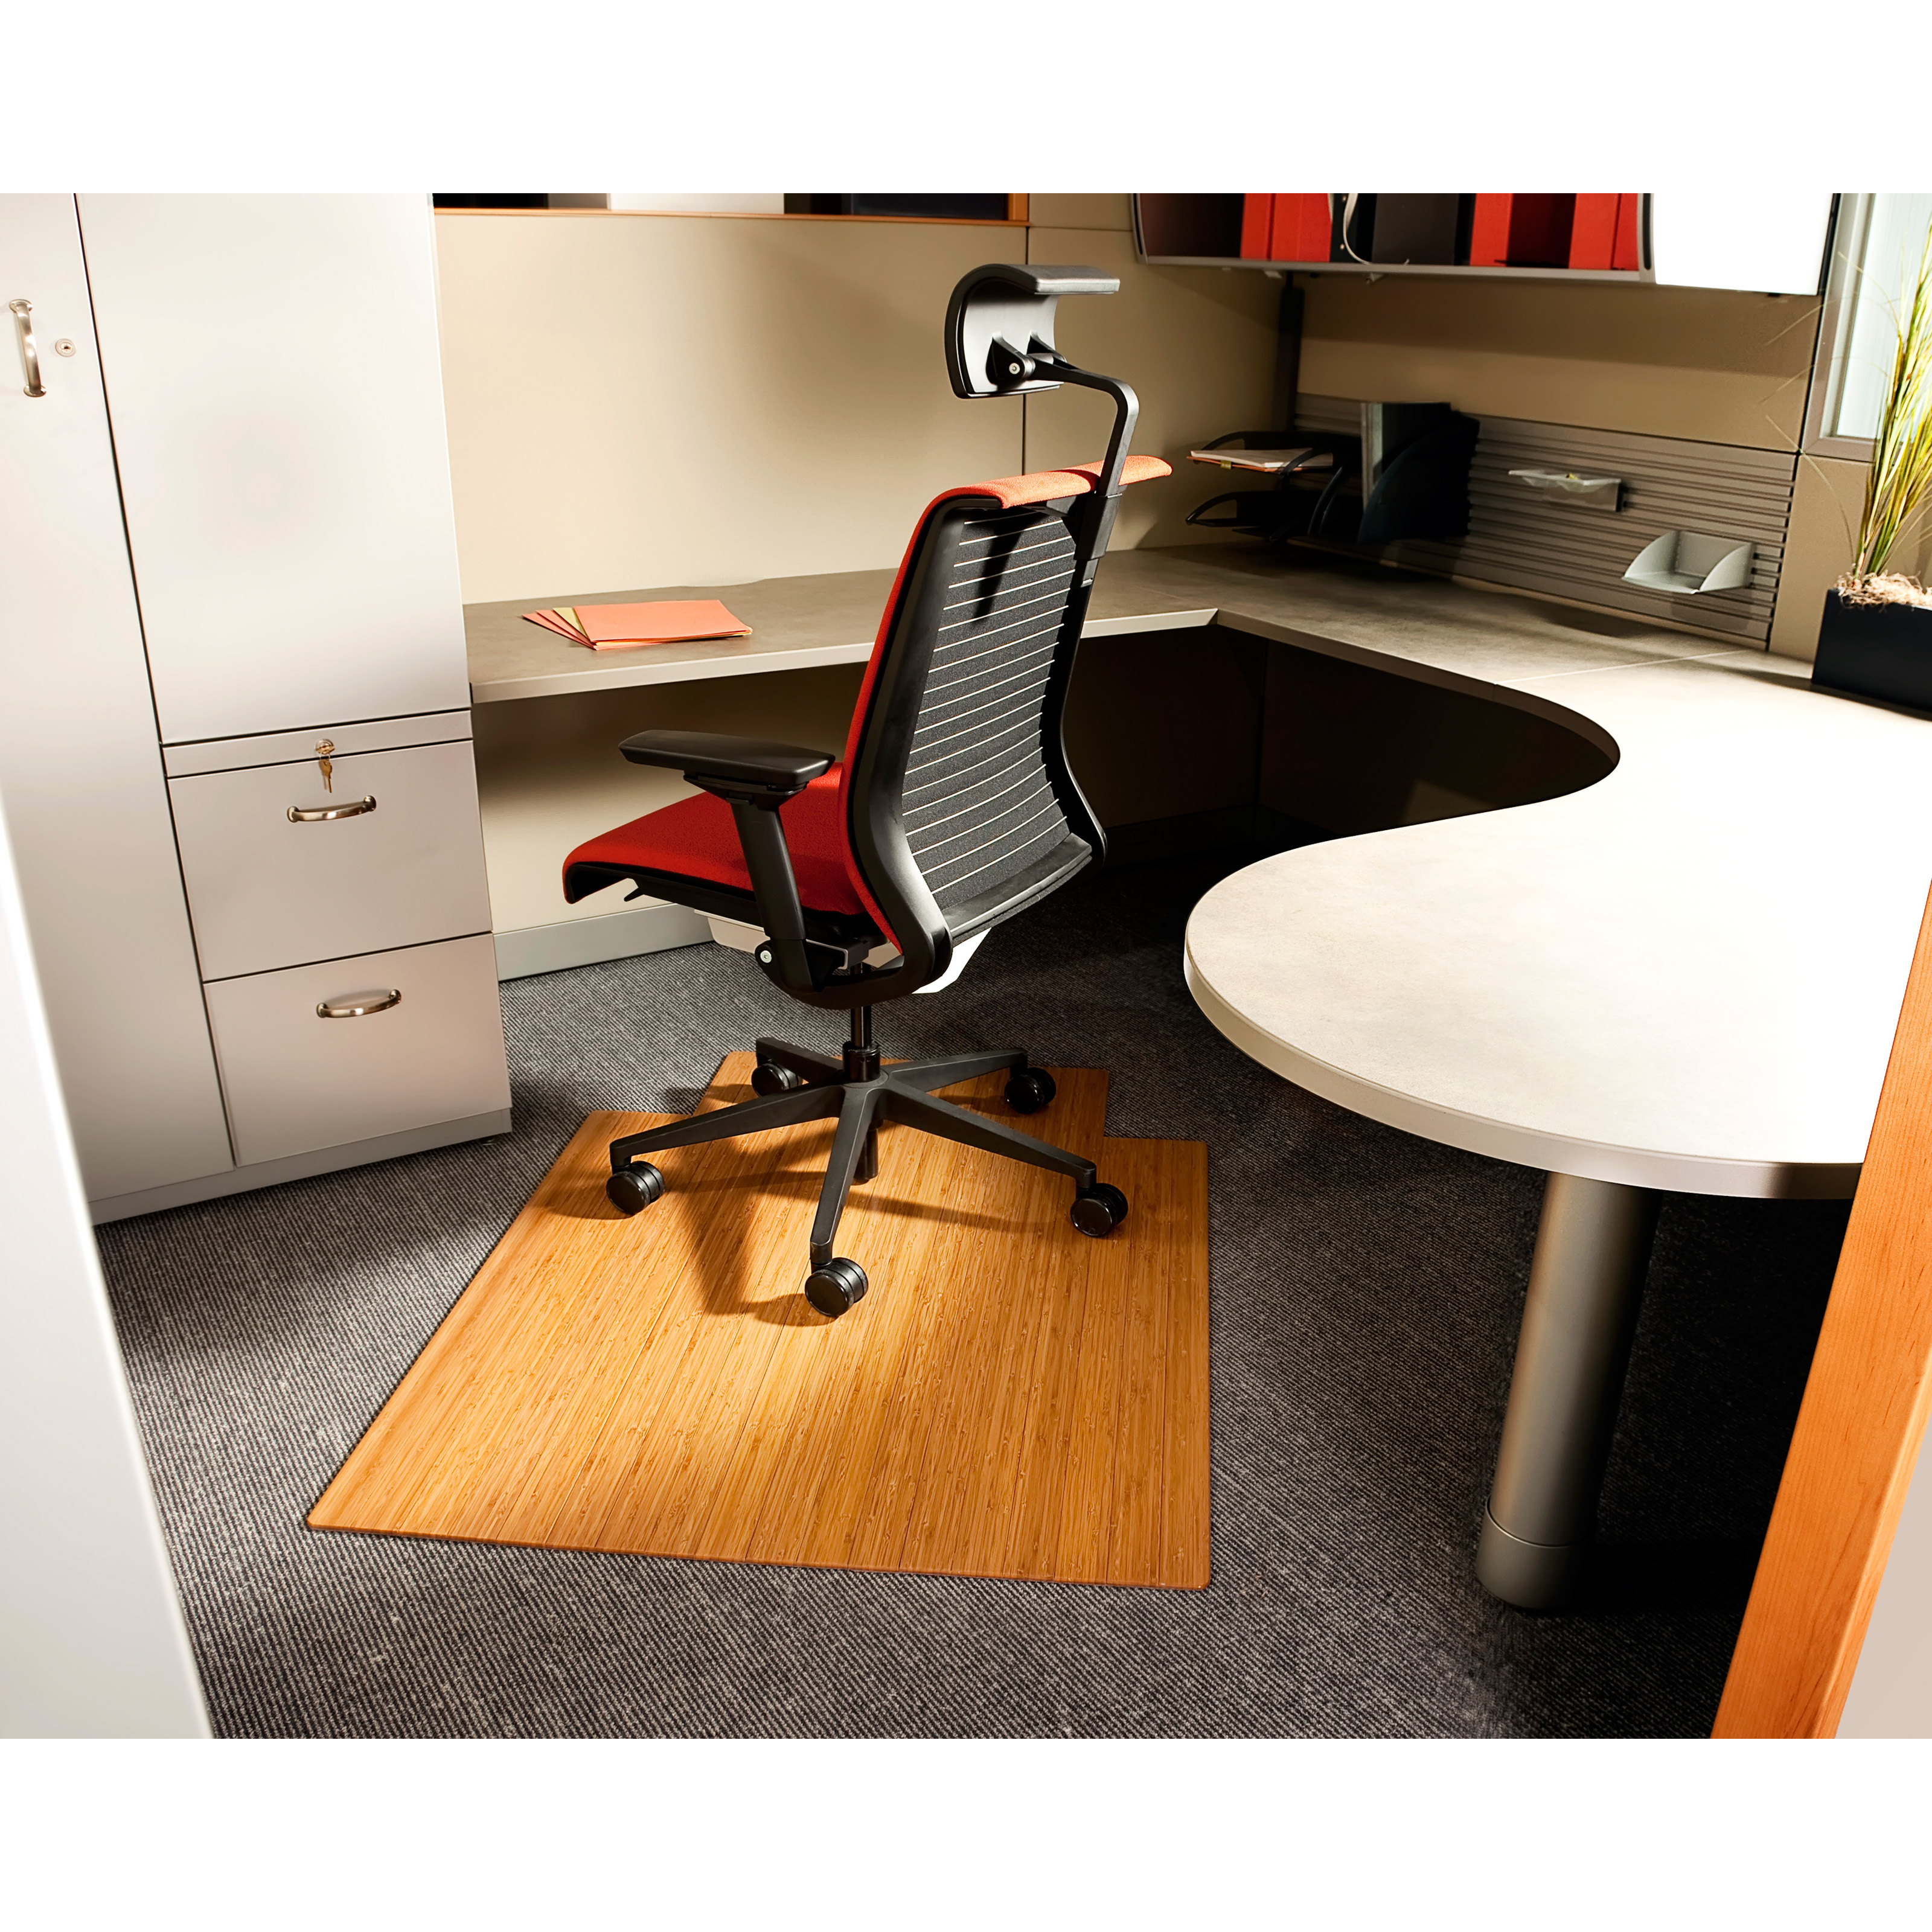 design size chairs floor l of hardwood computer for clear mats under rolling surface full donatzinfo rug chair seat plastic mat hard wood roller colored carpet x desk office